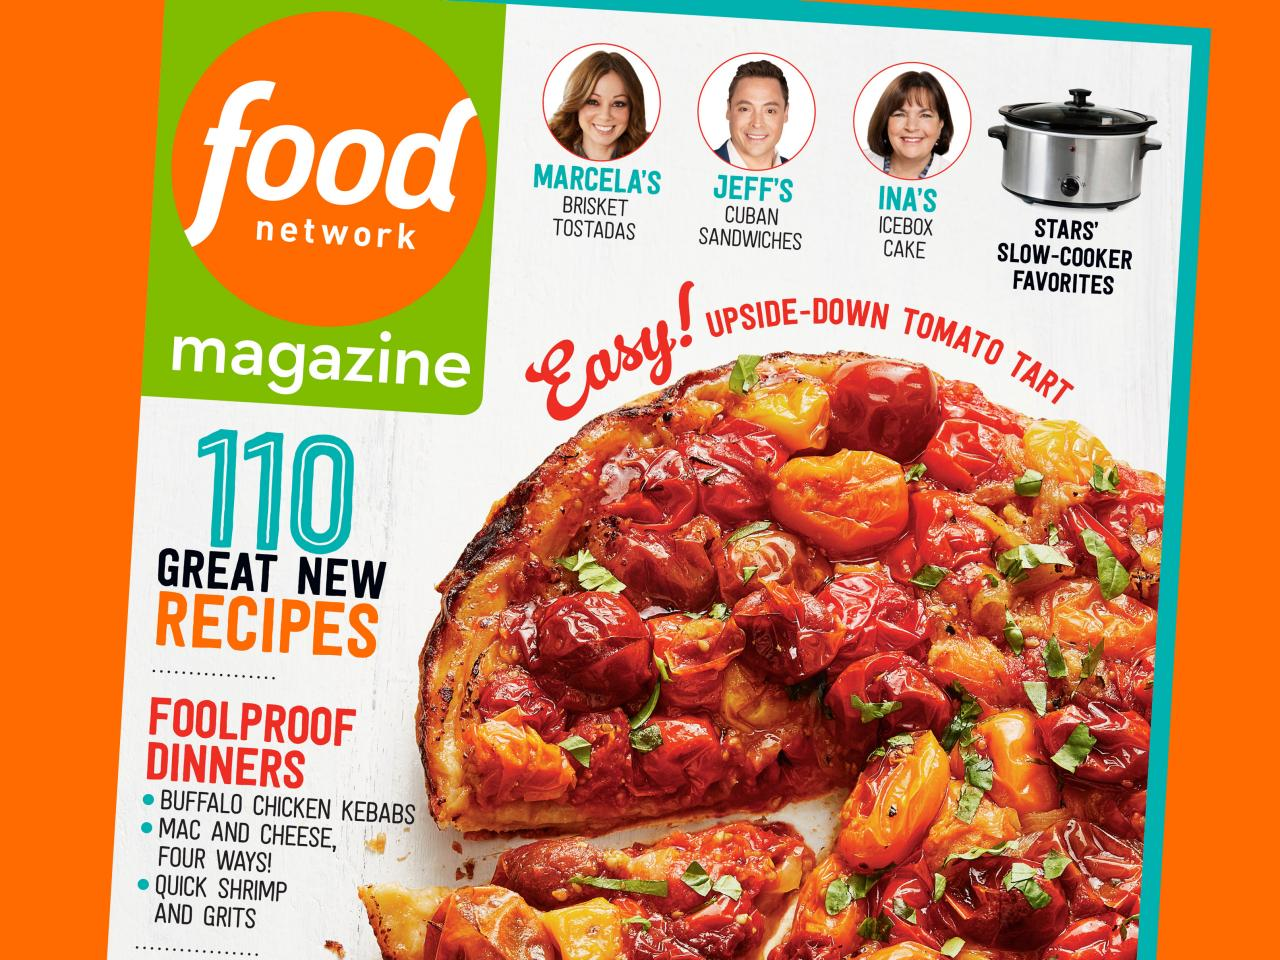 Food network magazine september 2016 recipe index food network food network magazine september 2016 recipe index forumfinder Images